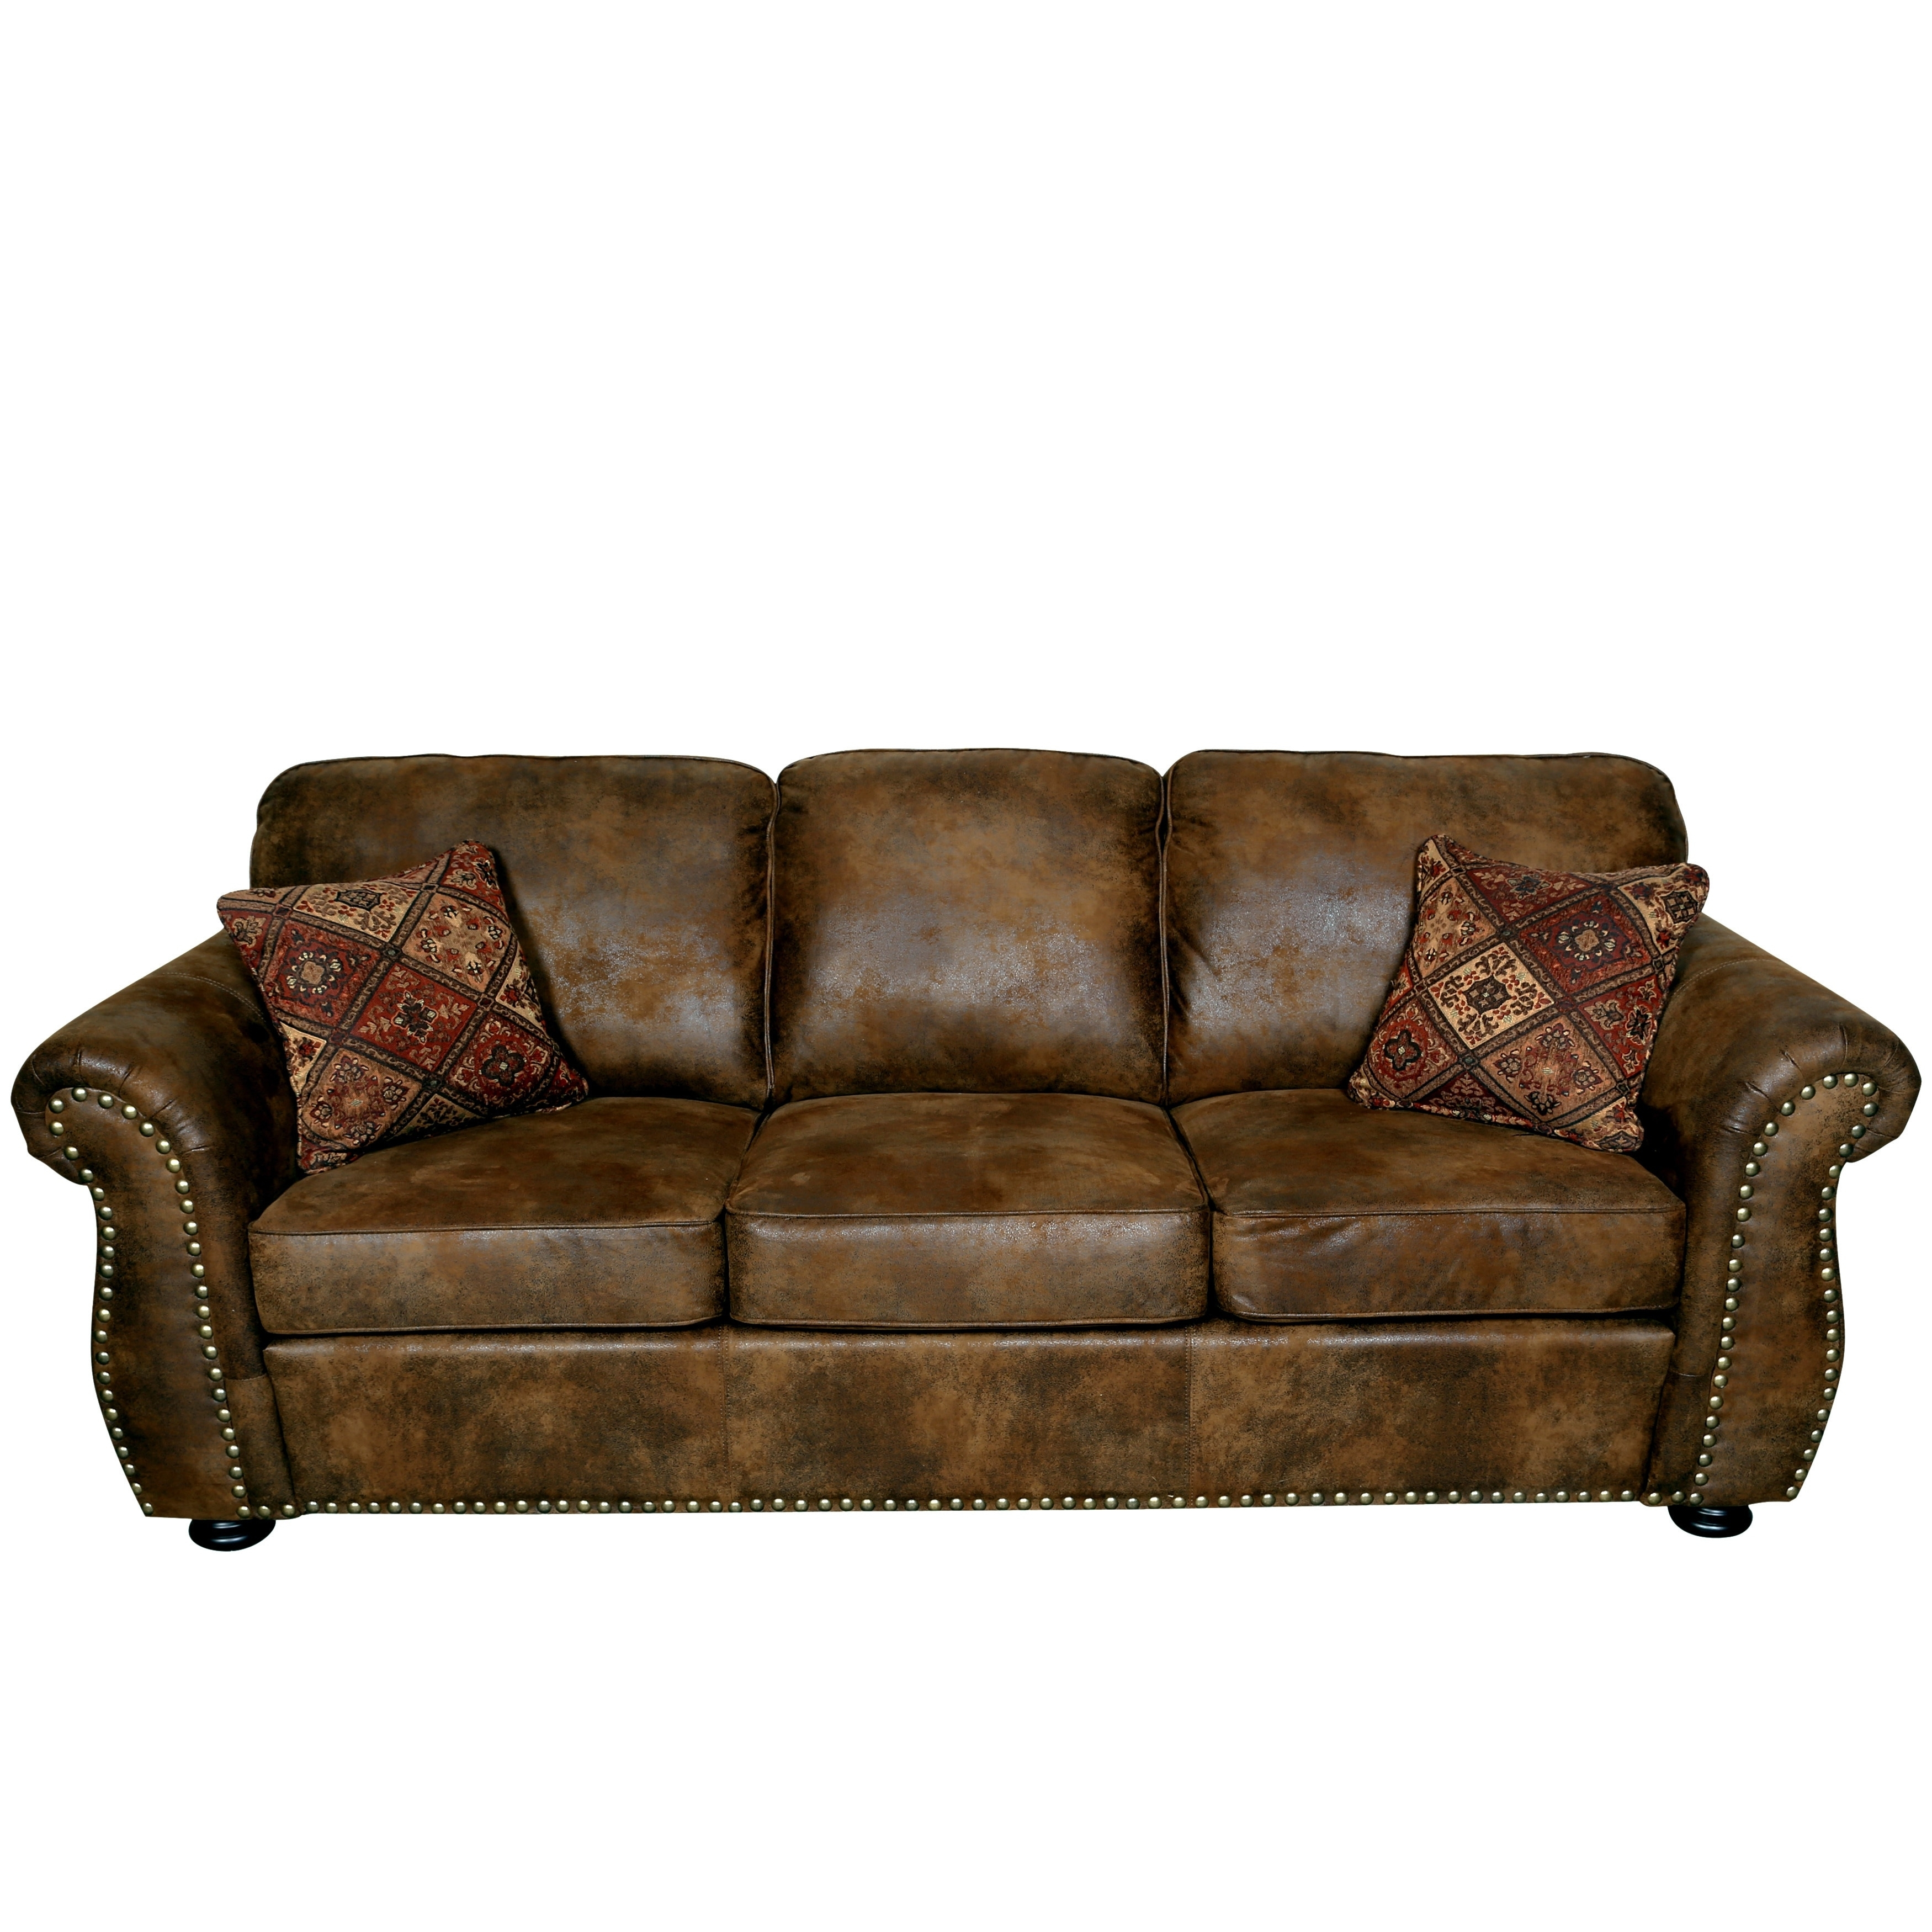 Porter Elk River Brown Microfiber Faux Suede Leather Sofa With 2 With Regard To Faux Suede Sofas (Image 7 of 10)